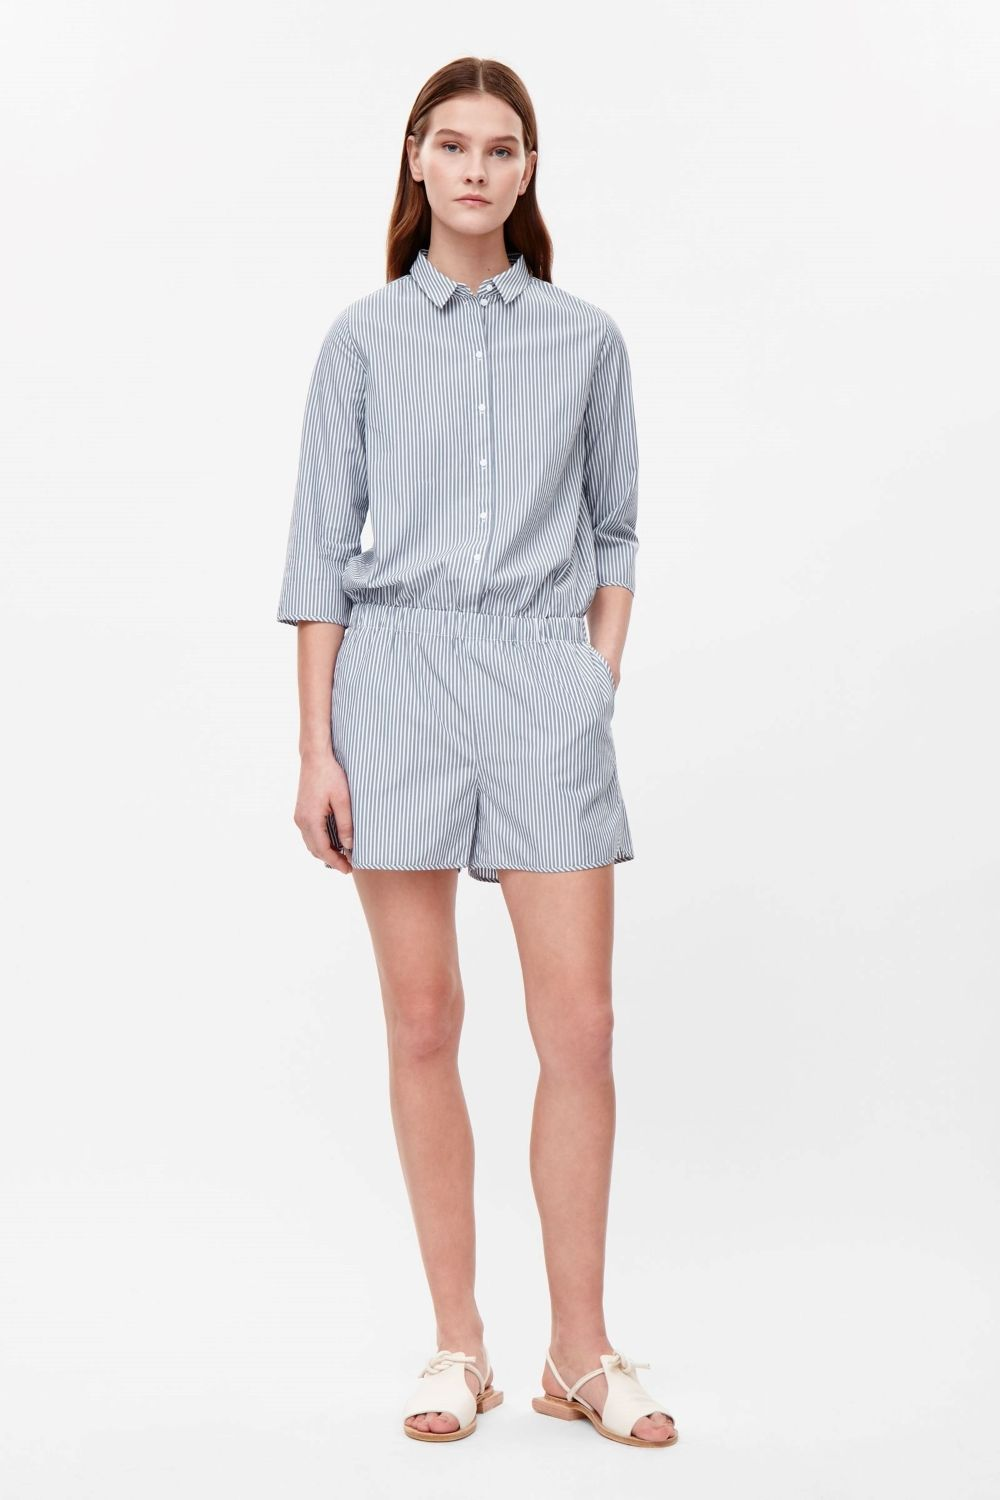 This shirt inspired jumpsuit is made from a soft cotton with an all-over stripe pattern. A relaxed fit and a short style, it has a neat collar, 3/4 sleeves and subtle side seam pockets.